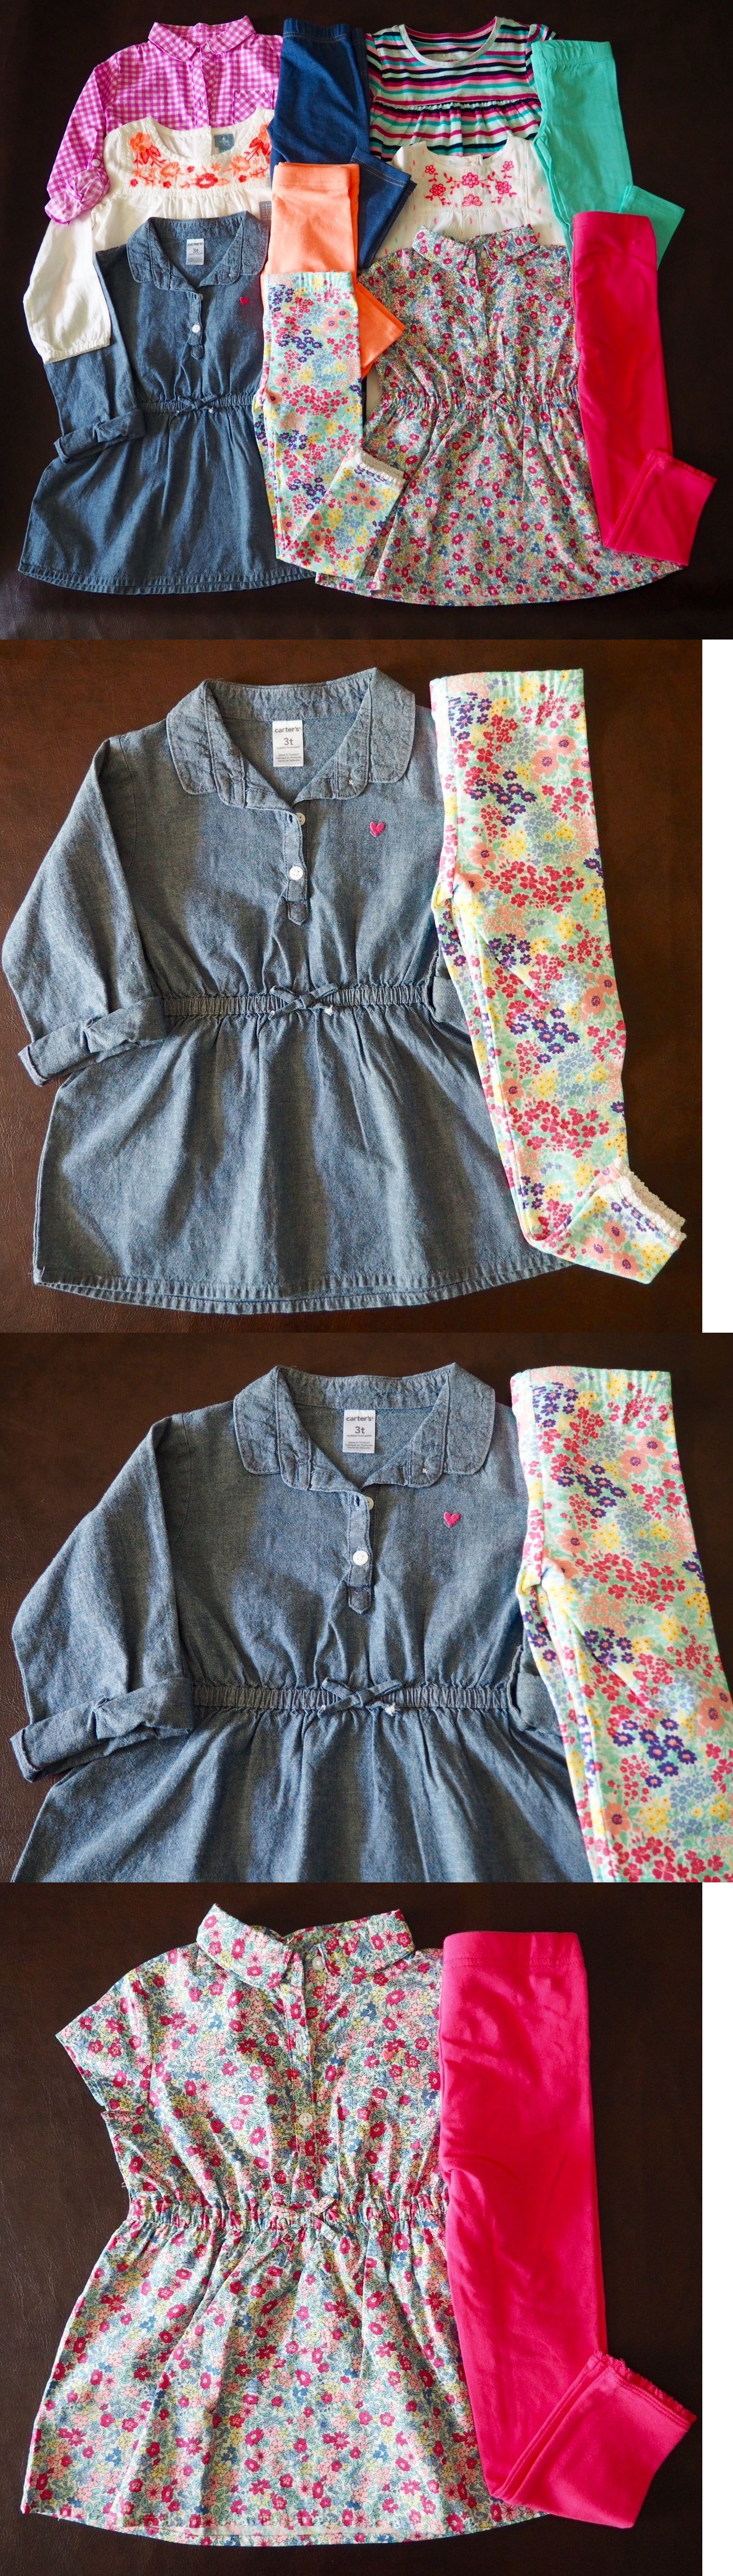 Mixed Items and Lots 147220: New Carter S And Baby Gap Girl S Summer Fall Lot Legging - 11 Pieces - Size 3 3T -> BUY IT NOW ONLY: $75 on eBay!